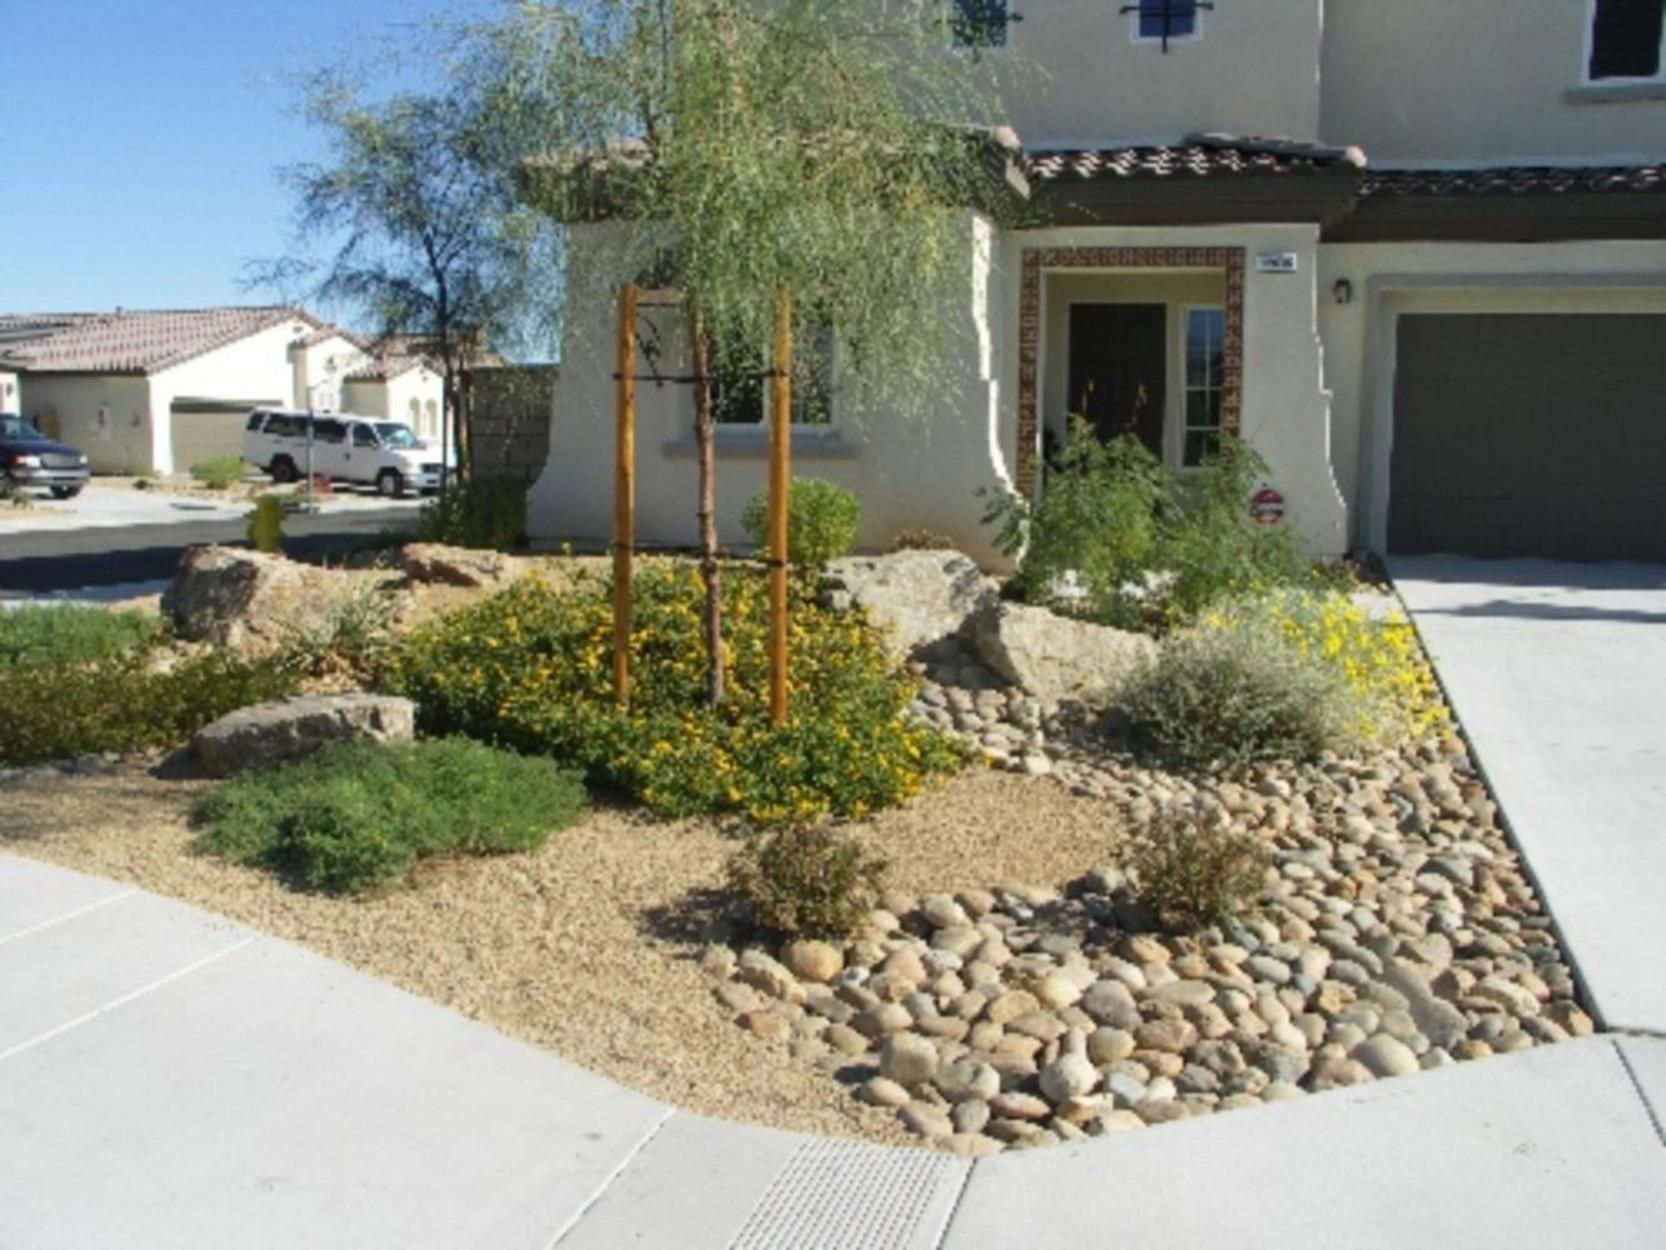 44 Stunning Modern Front Yard Landscaping Ideas Modernfrontyard Modern Front Y Front Yard Landscaping Design Xeriscape Front Yard Small Front Yard Landscaping